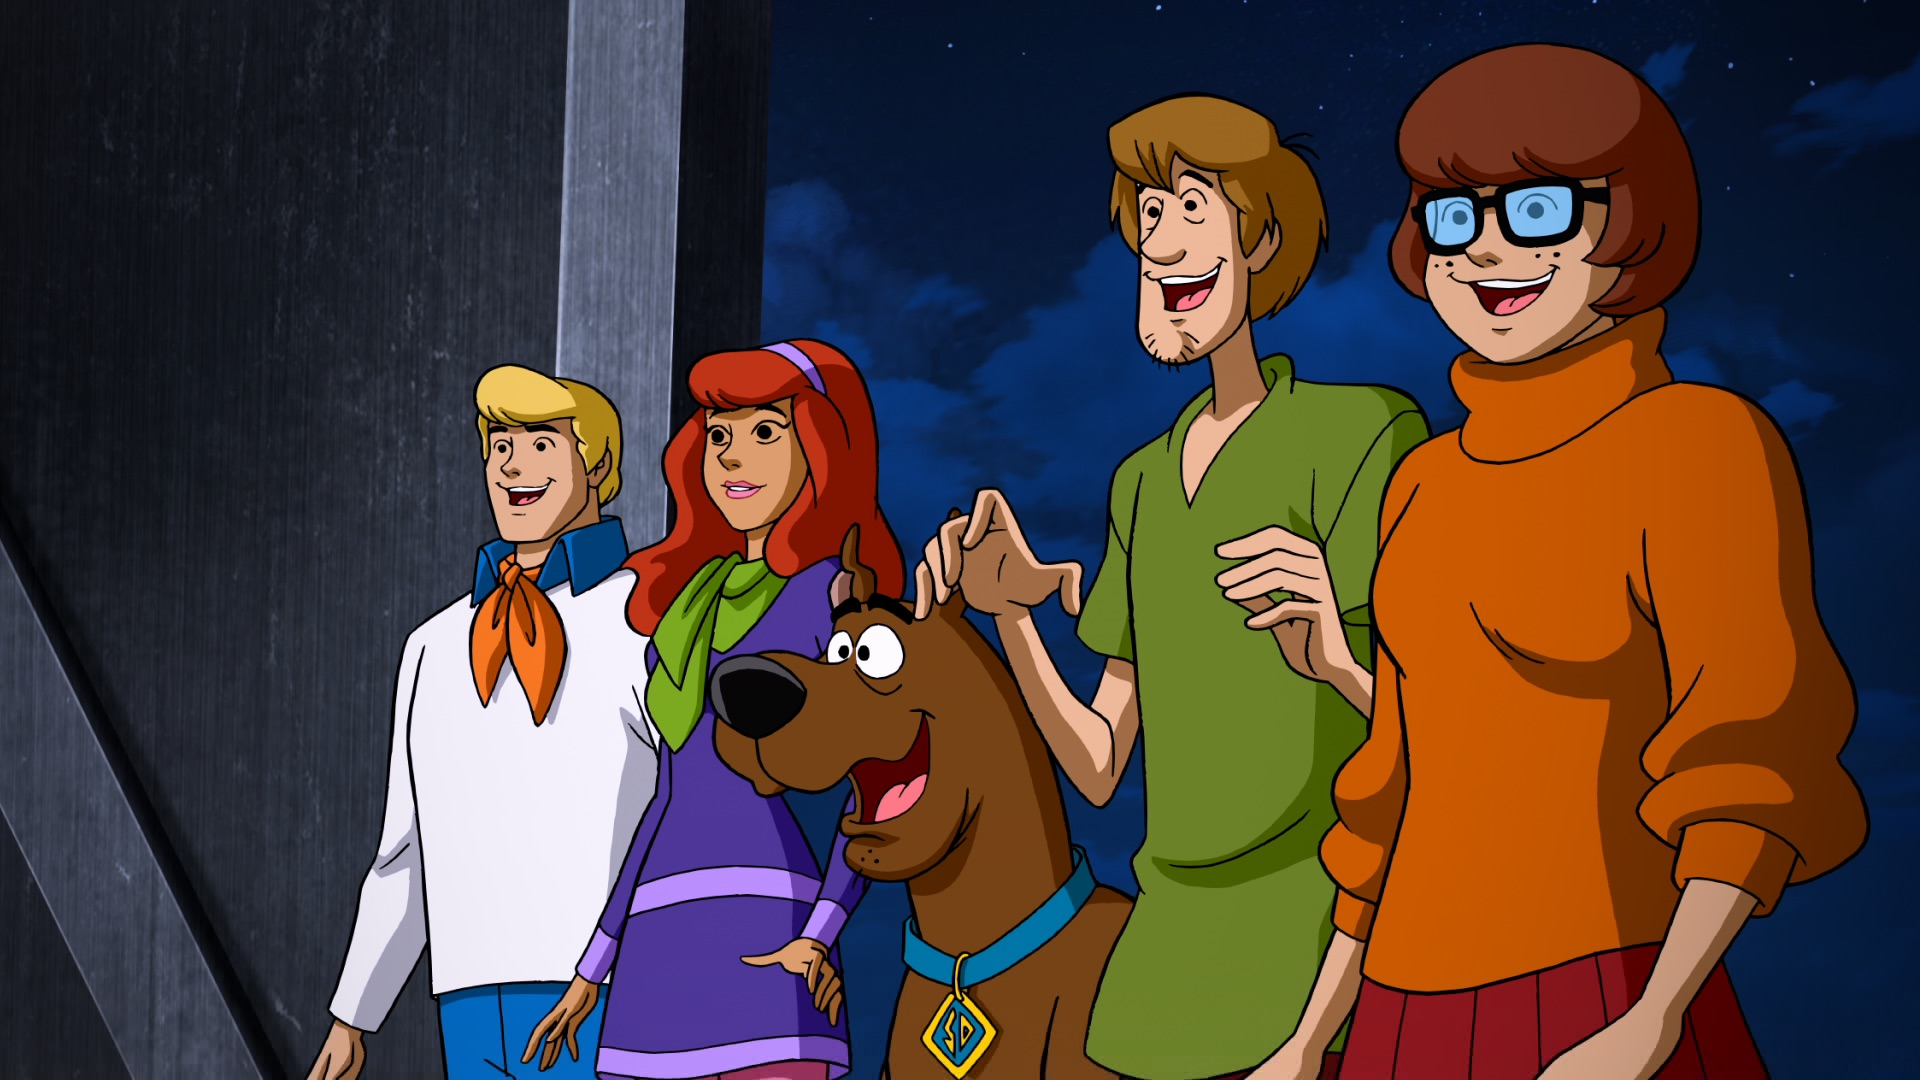 Scooby doo and wwe curse of the speed demon comics worth reading